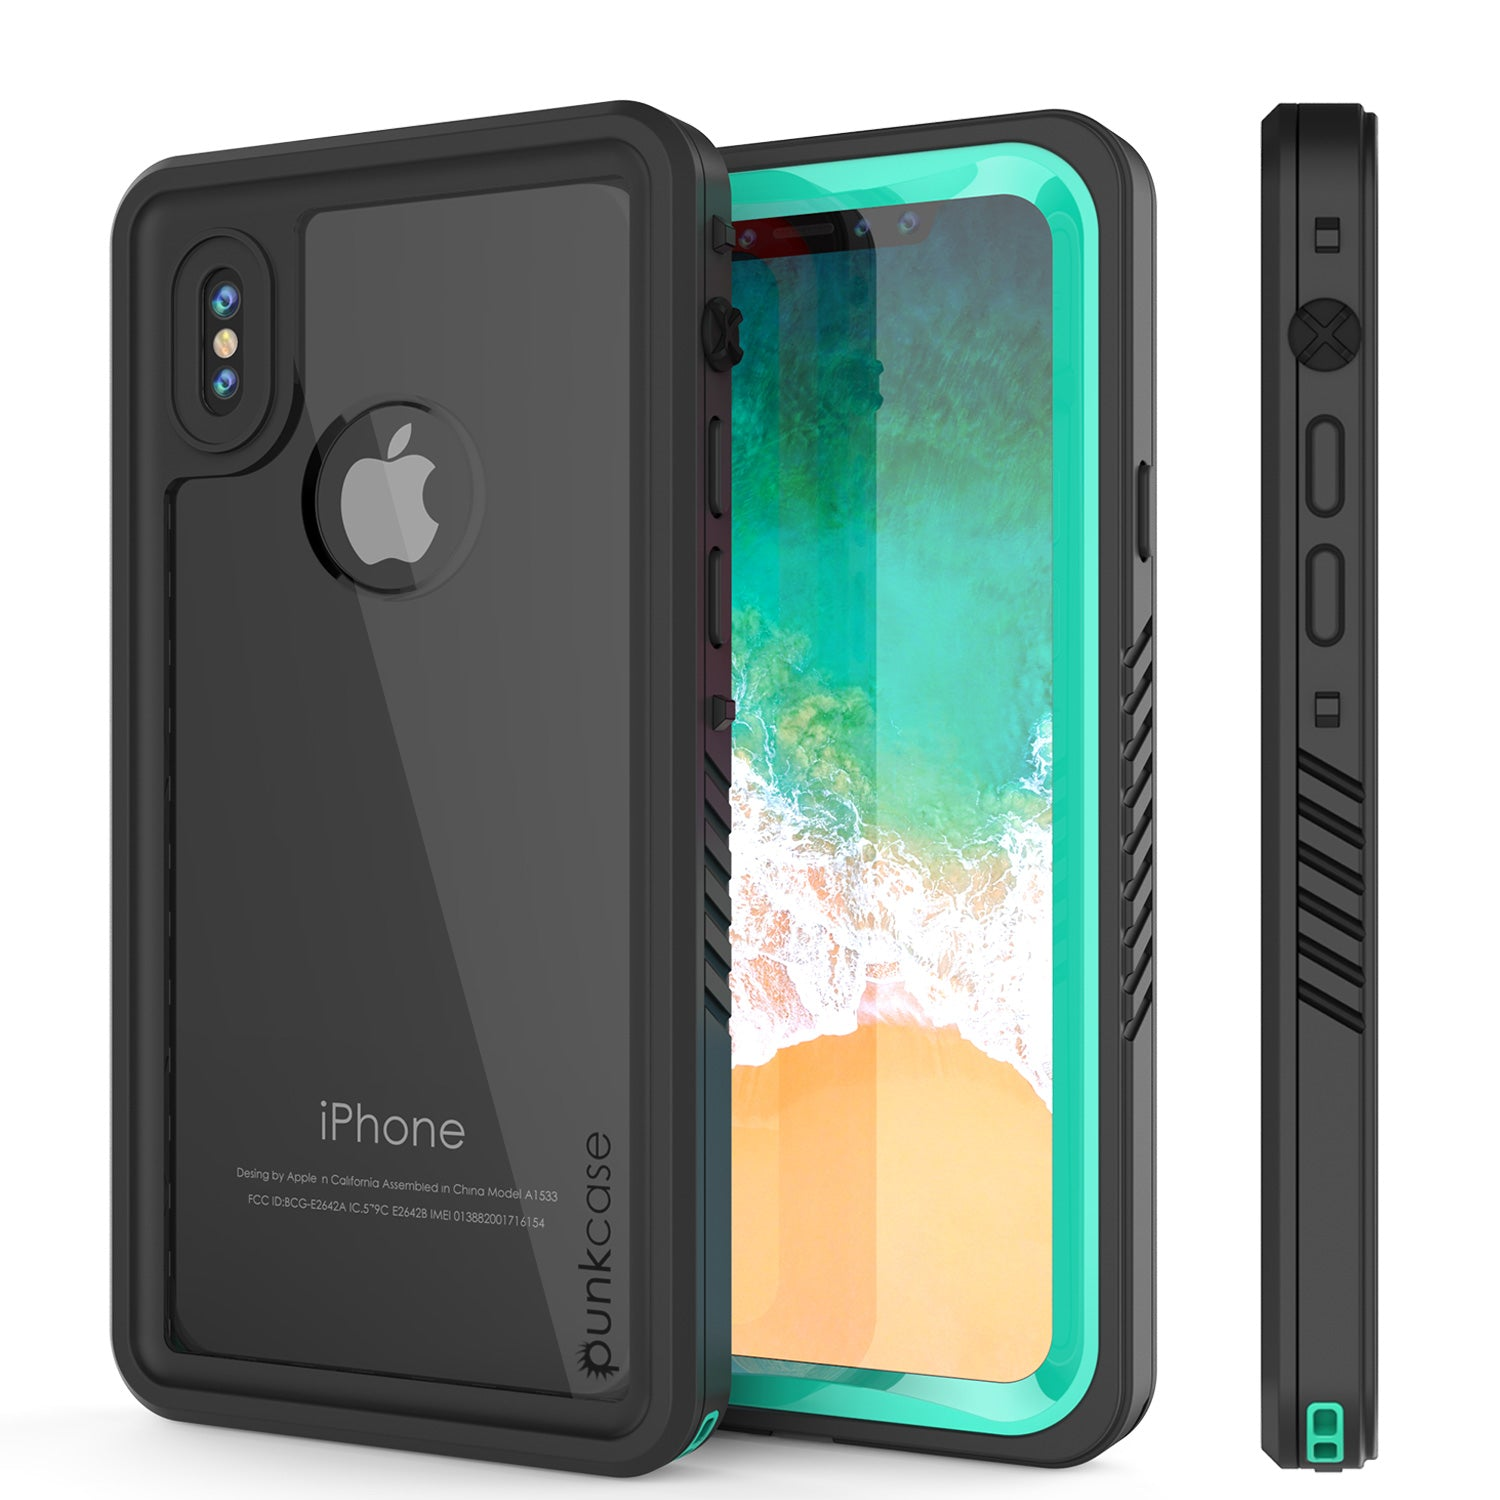 low priced 3e735 ccbda iPhone X Case, Punkcase [Extreme Series] [Slim Fit] [IP68 Certified] [Teal]